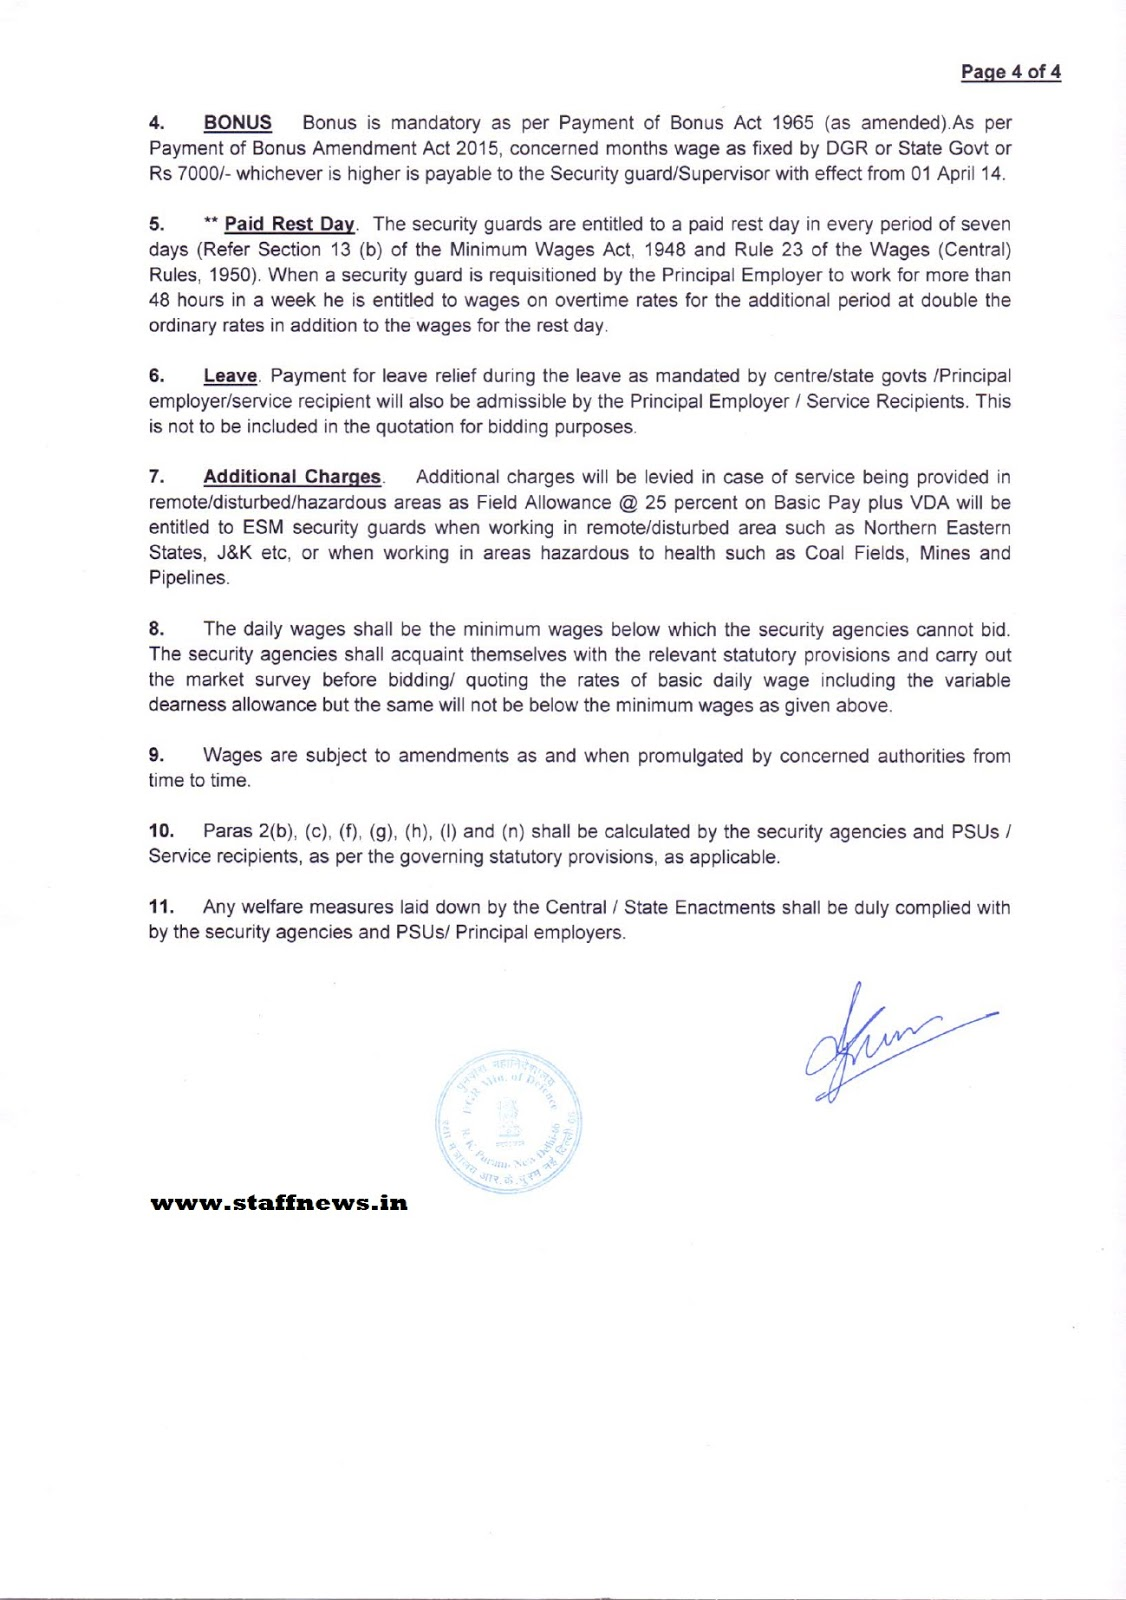 minimum wages w e f 01 apr 2016 for one day paid to all guards dgr wages 1 apr 2016 notes